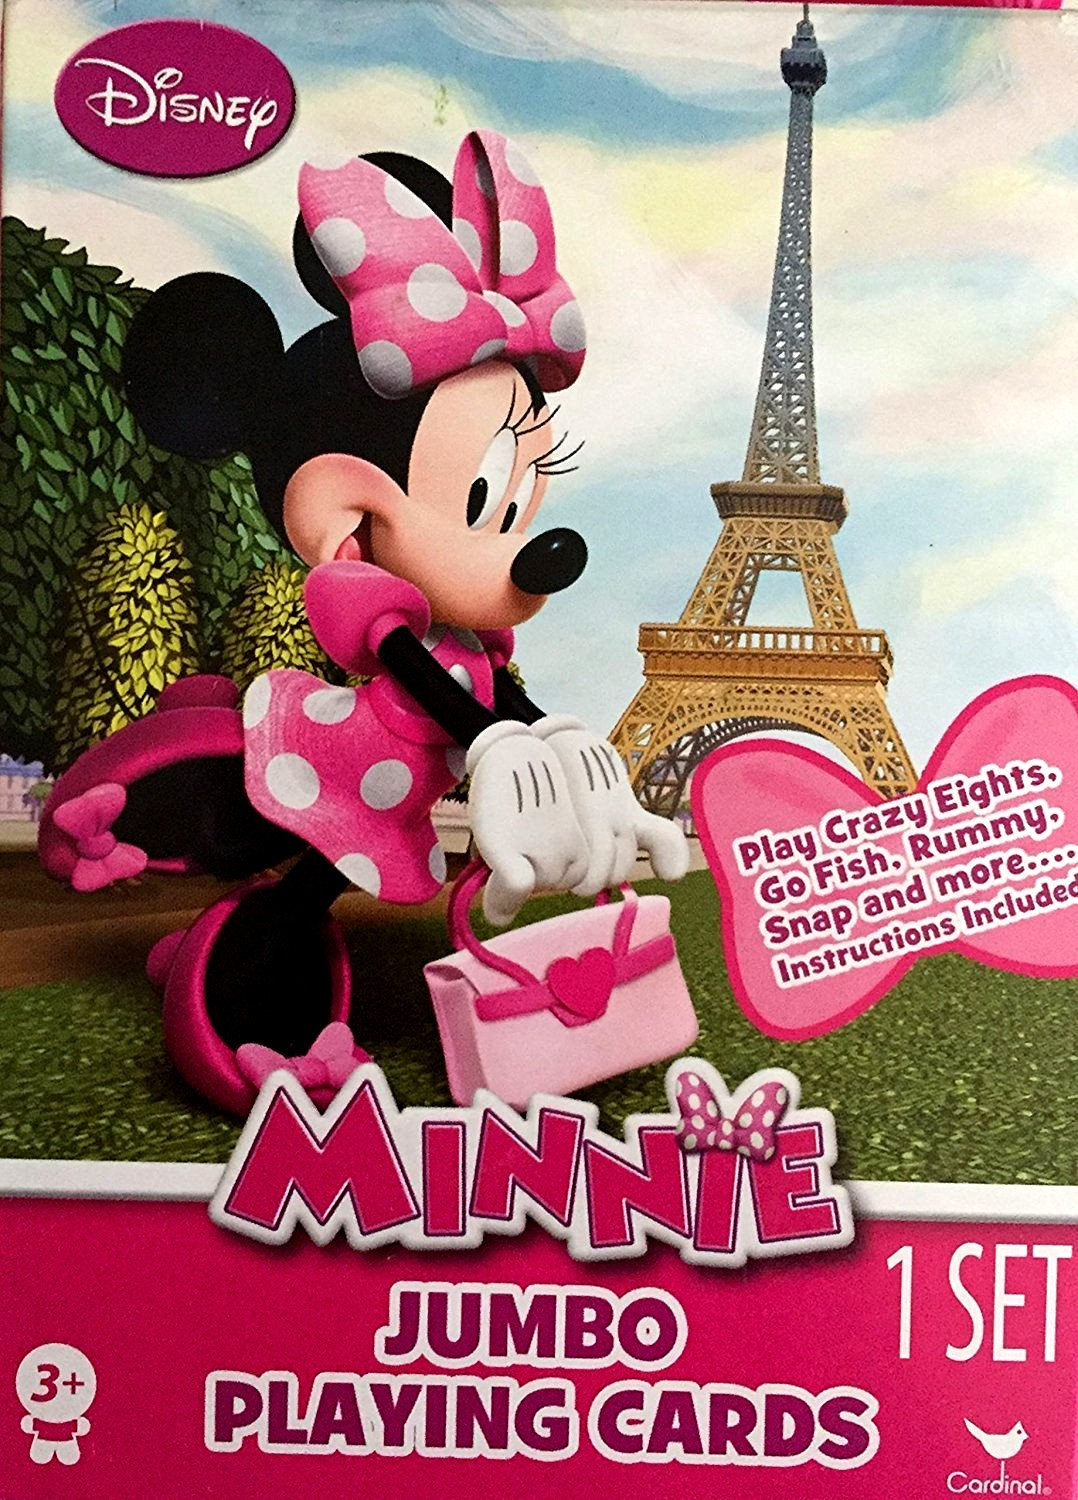 Minnie Mouse Jumbo Playing Cards 1 Set